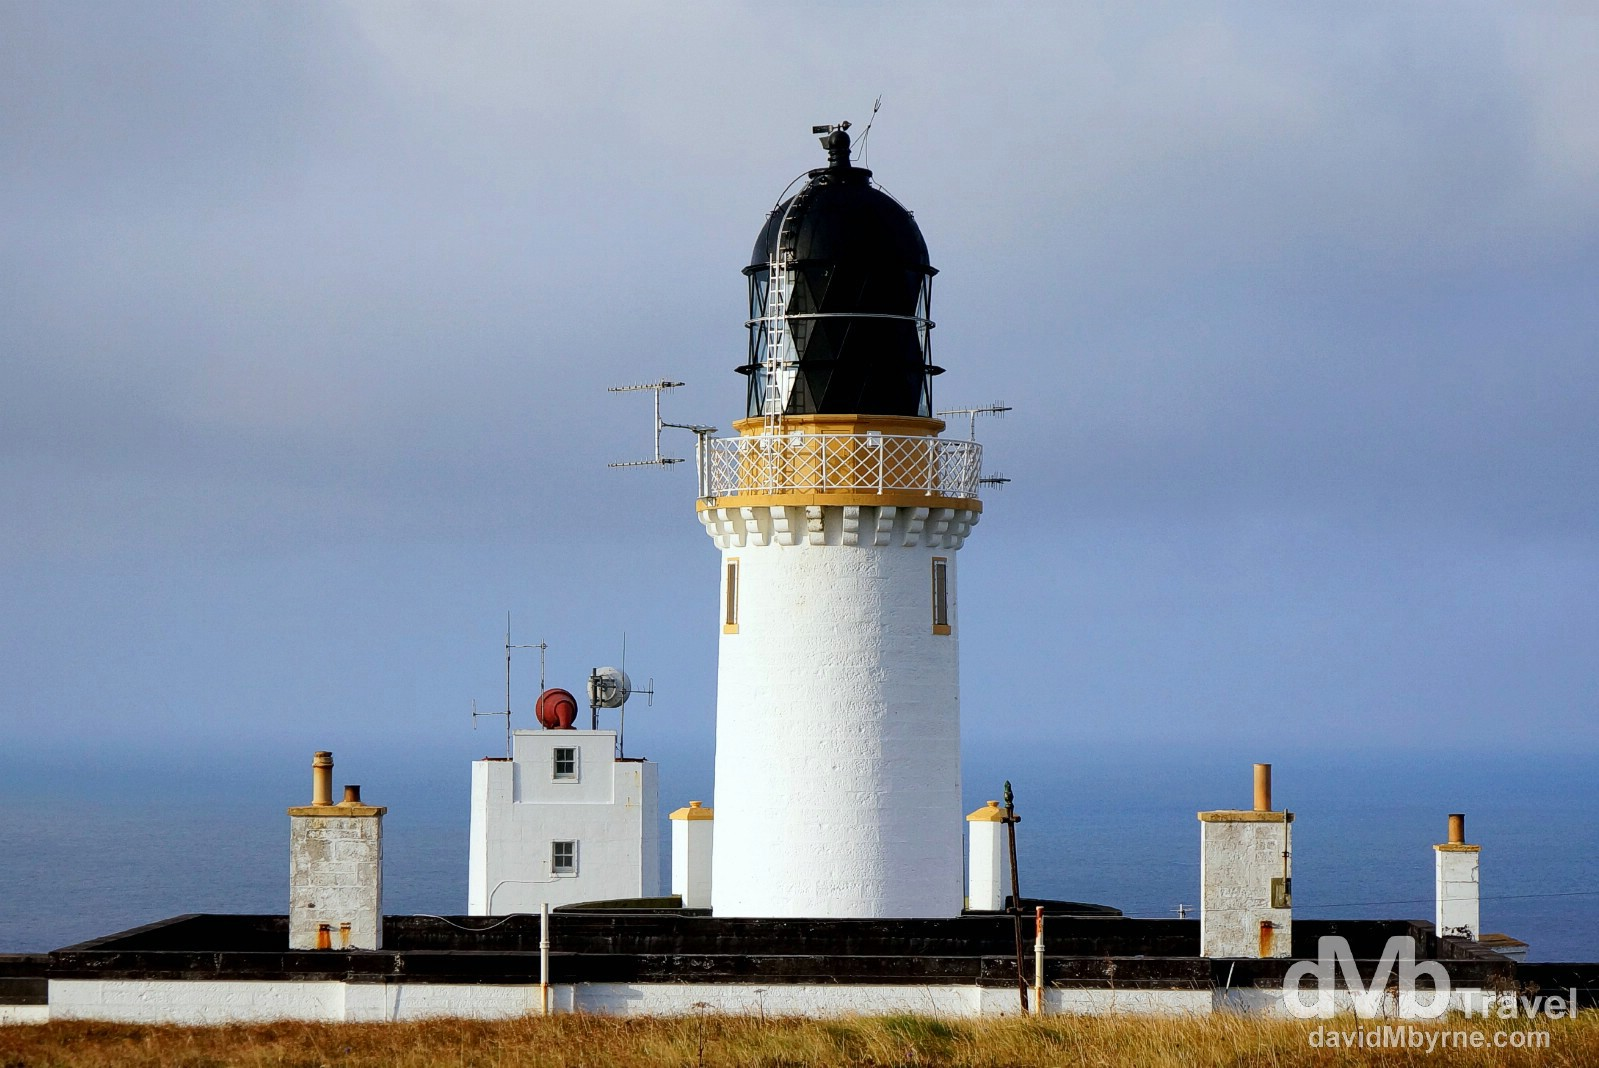 The lighthouse on Dunnet Head, the most northerly point on the British mainland. Dunnet Head, Scotland. September 14, 2014.